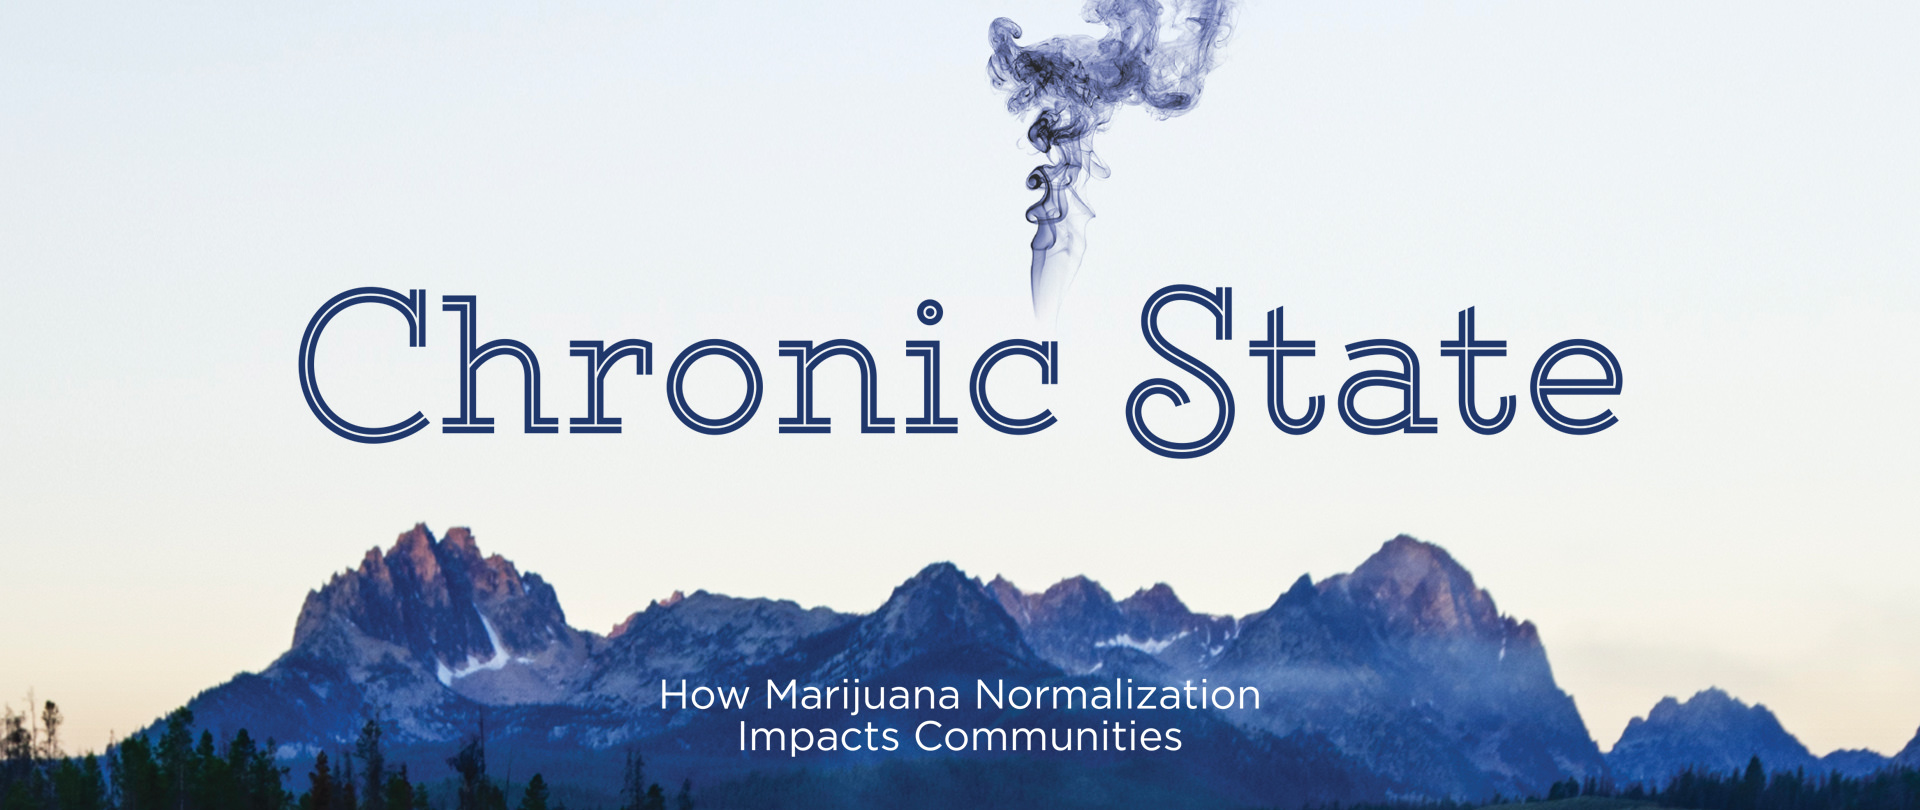 Chronic State Film Educates U.S. on Cannabis Legalization Outcomes